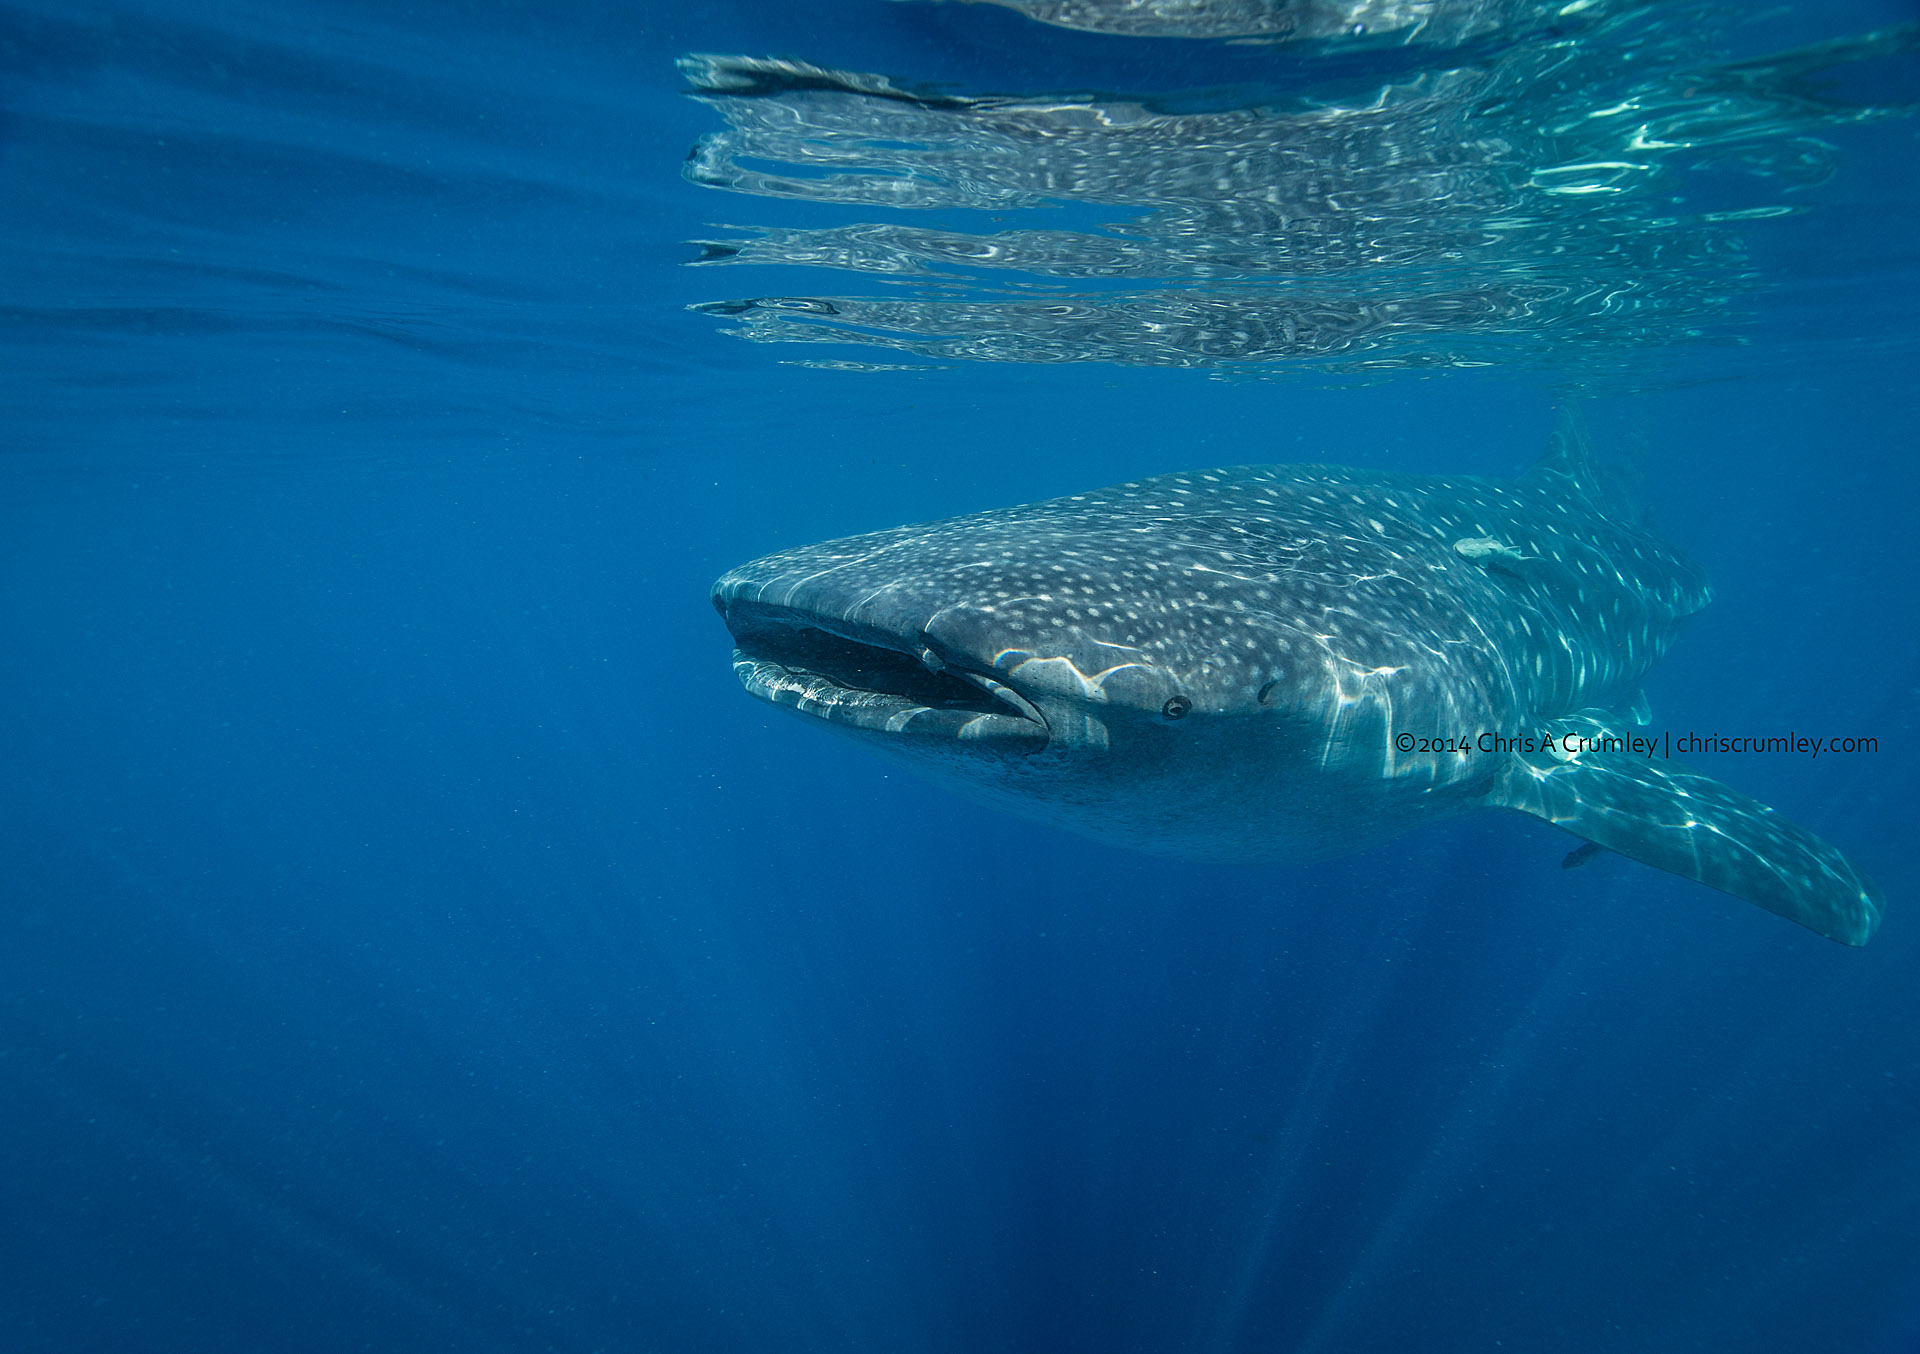 Whale Shark Isla Mujeres, Mexico Underwater